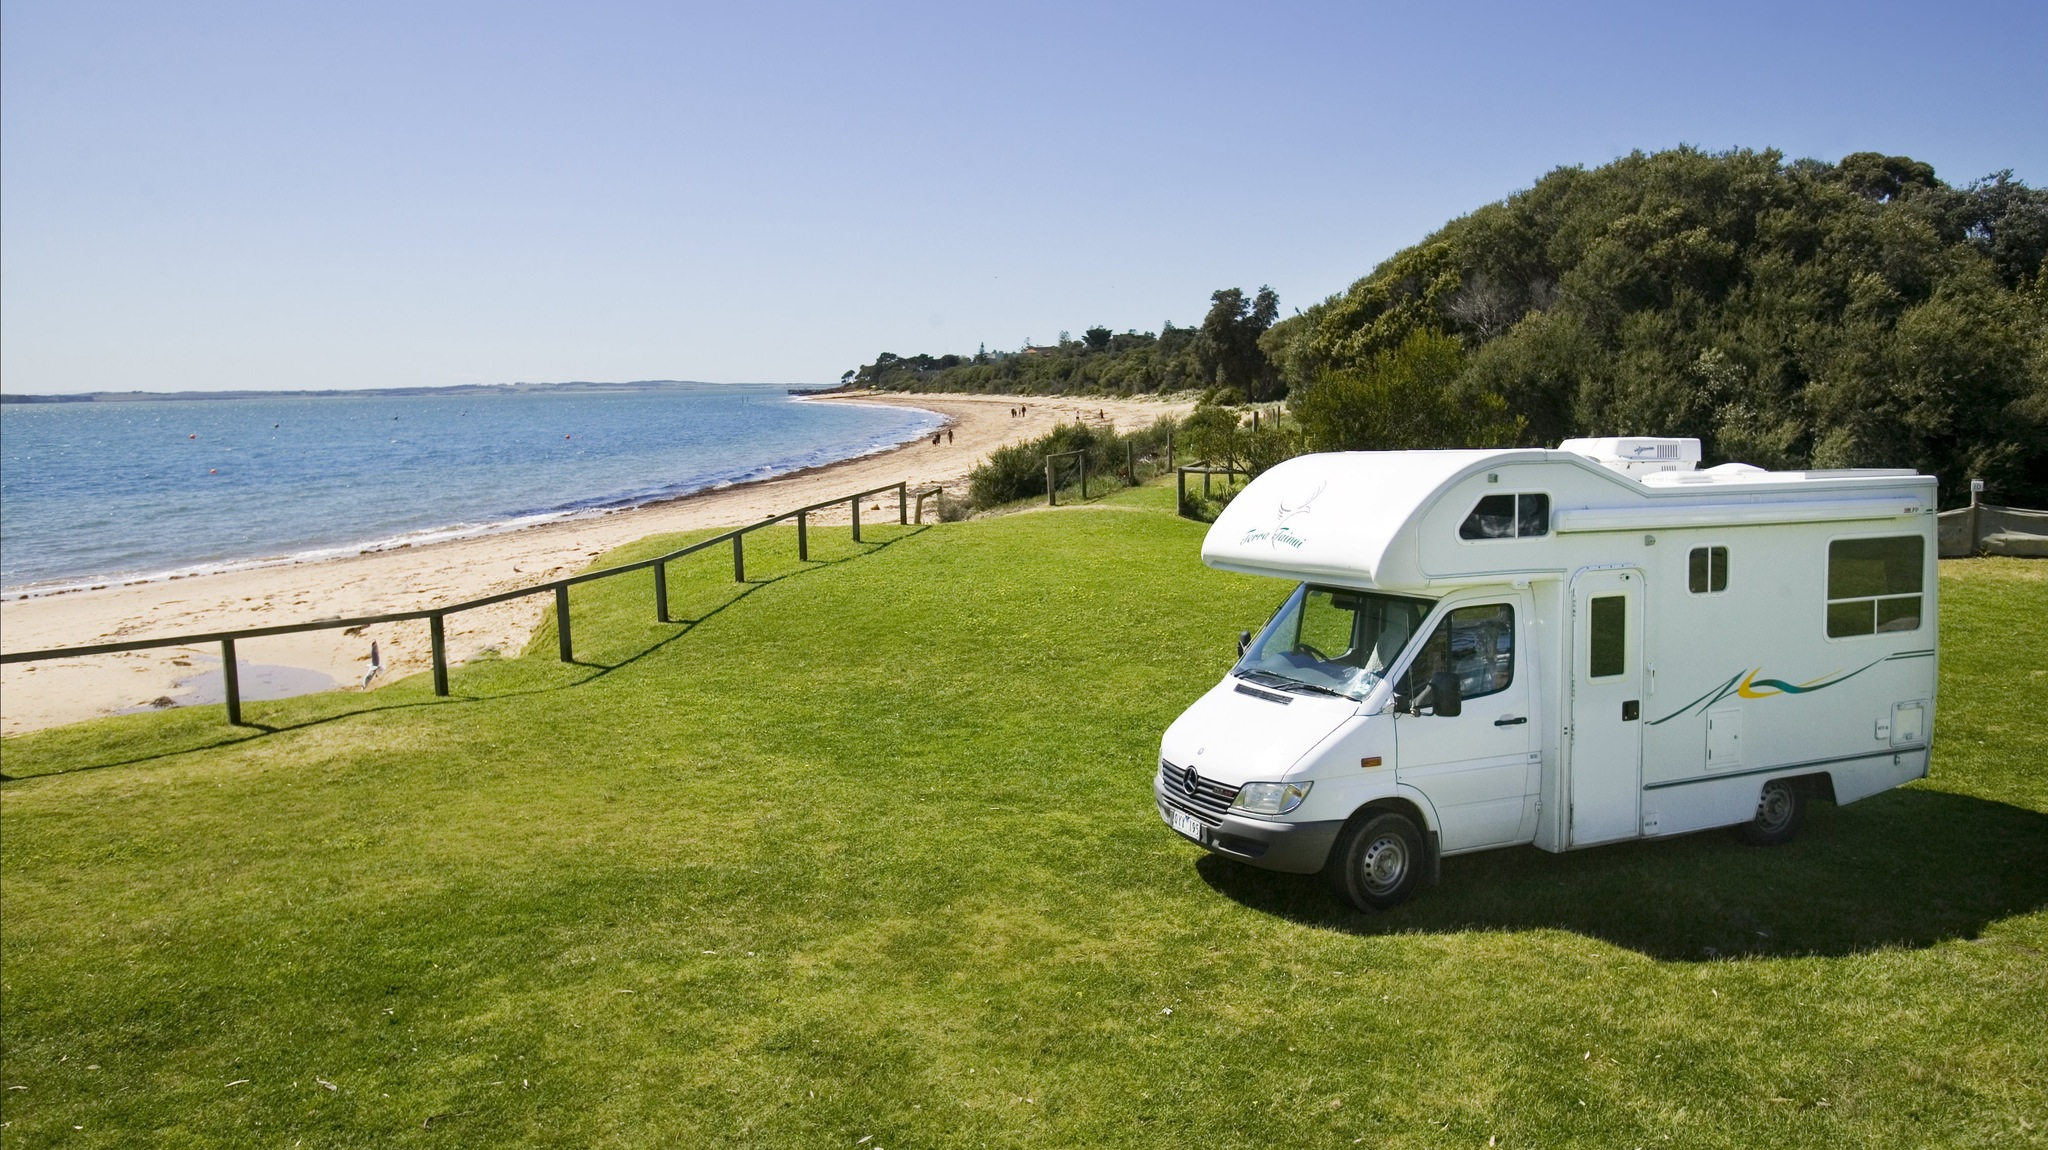 Camping right on the Beach